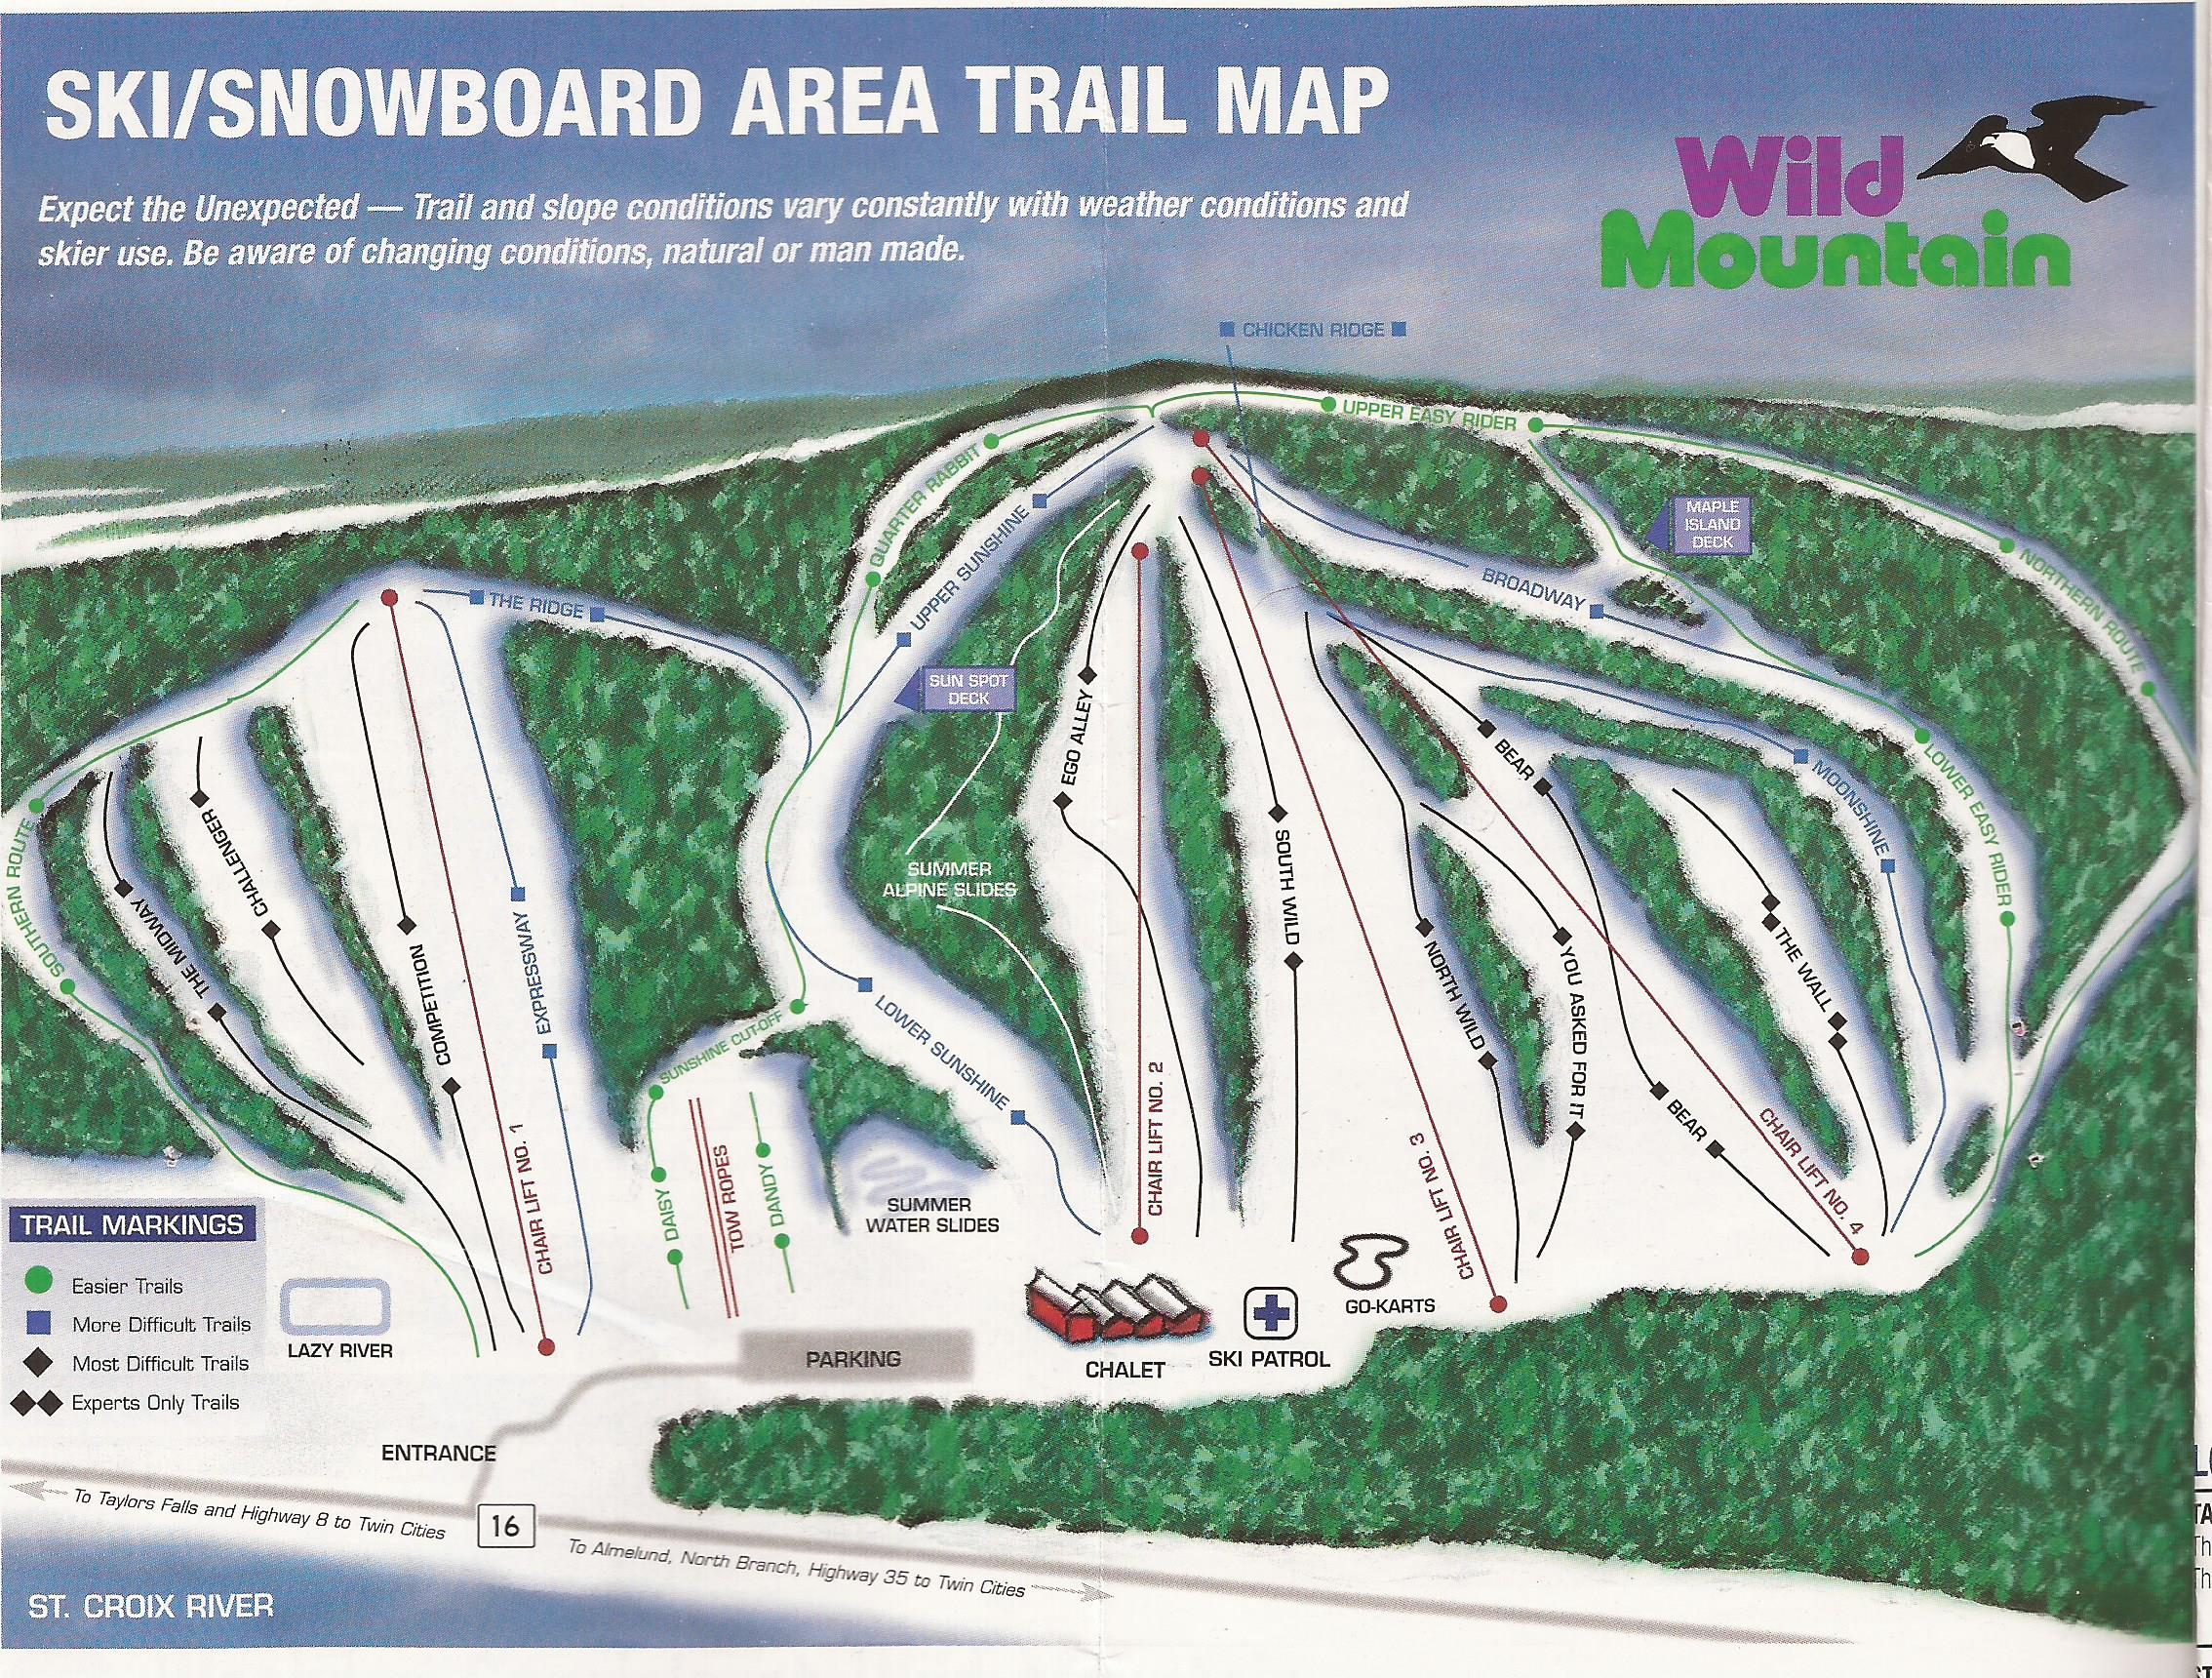 Wild Mountain Ski Area - SkiMap org